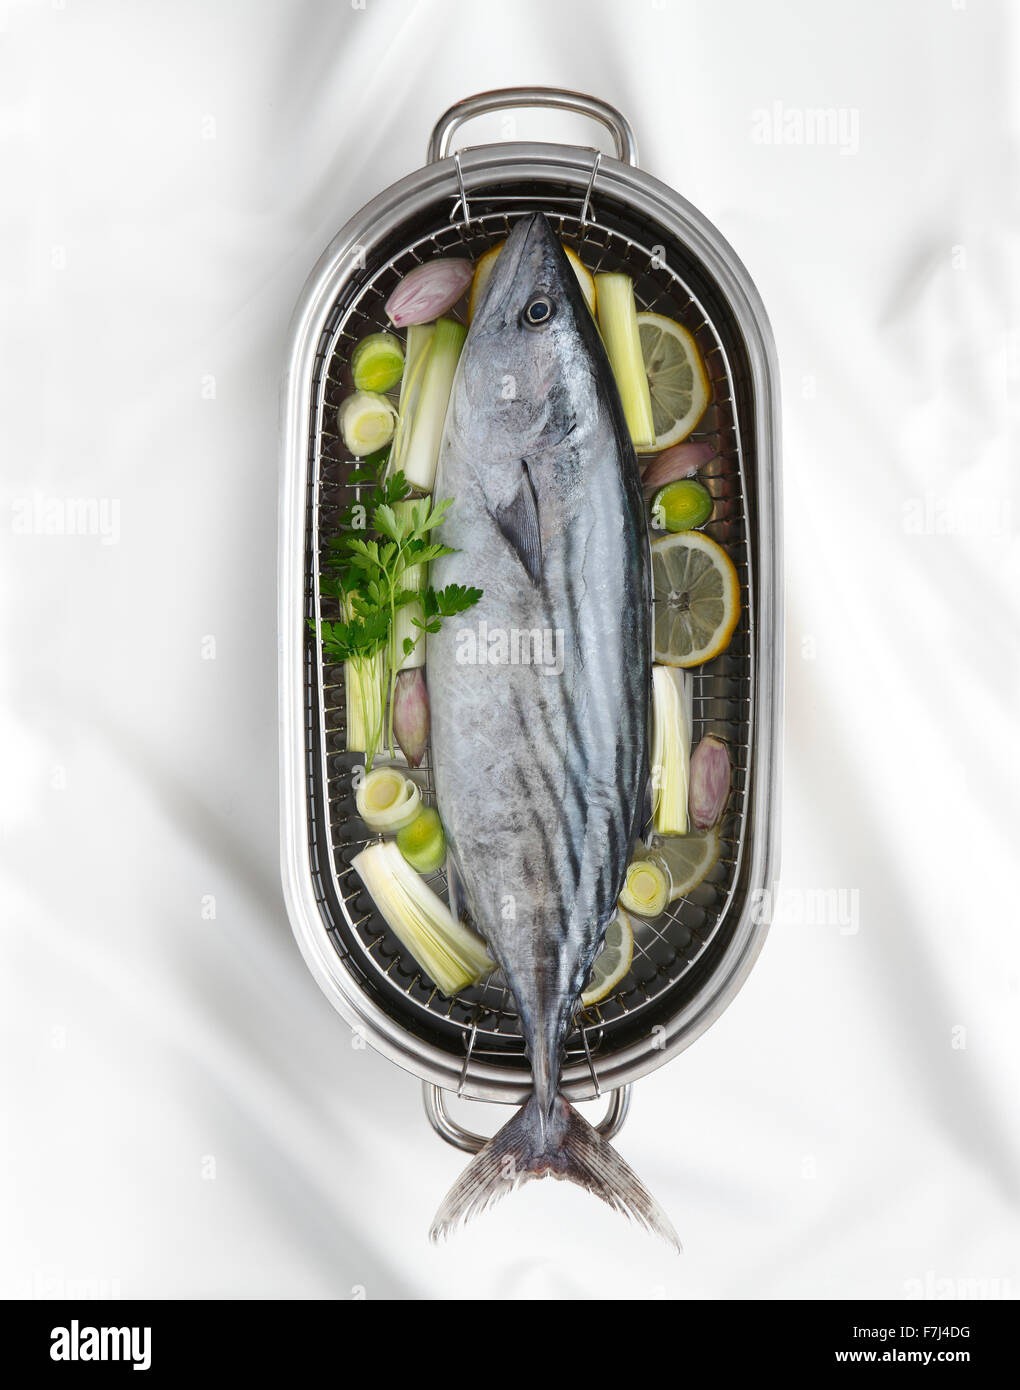 An Atlantic bonito in a cooking pot - Stock Image